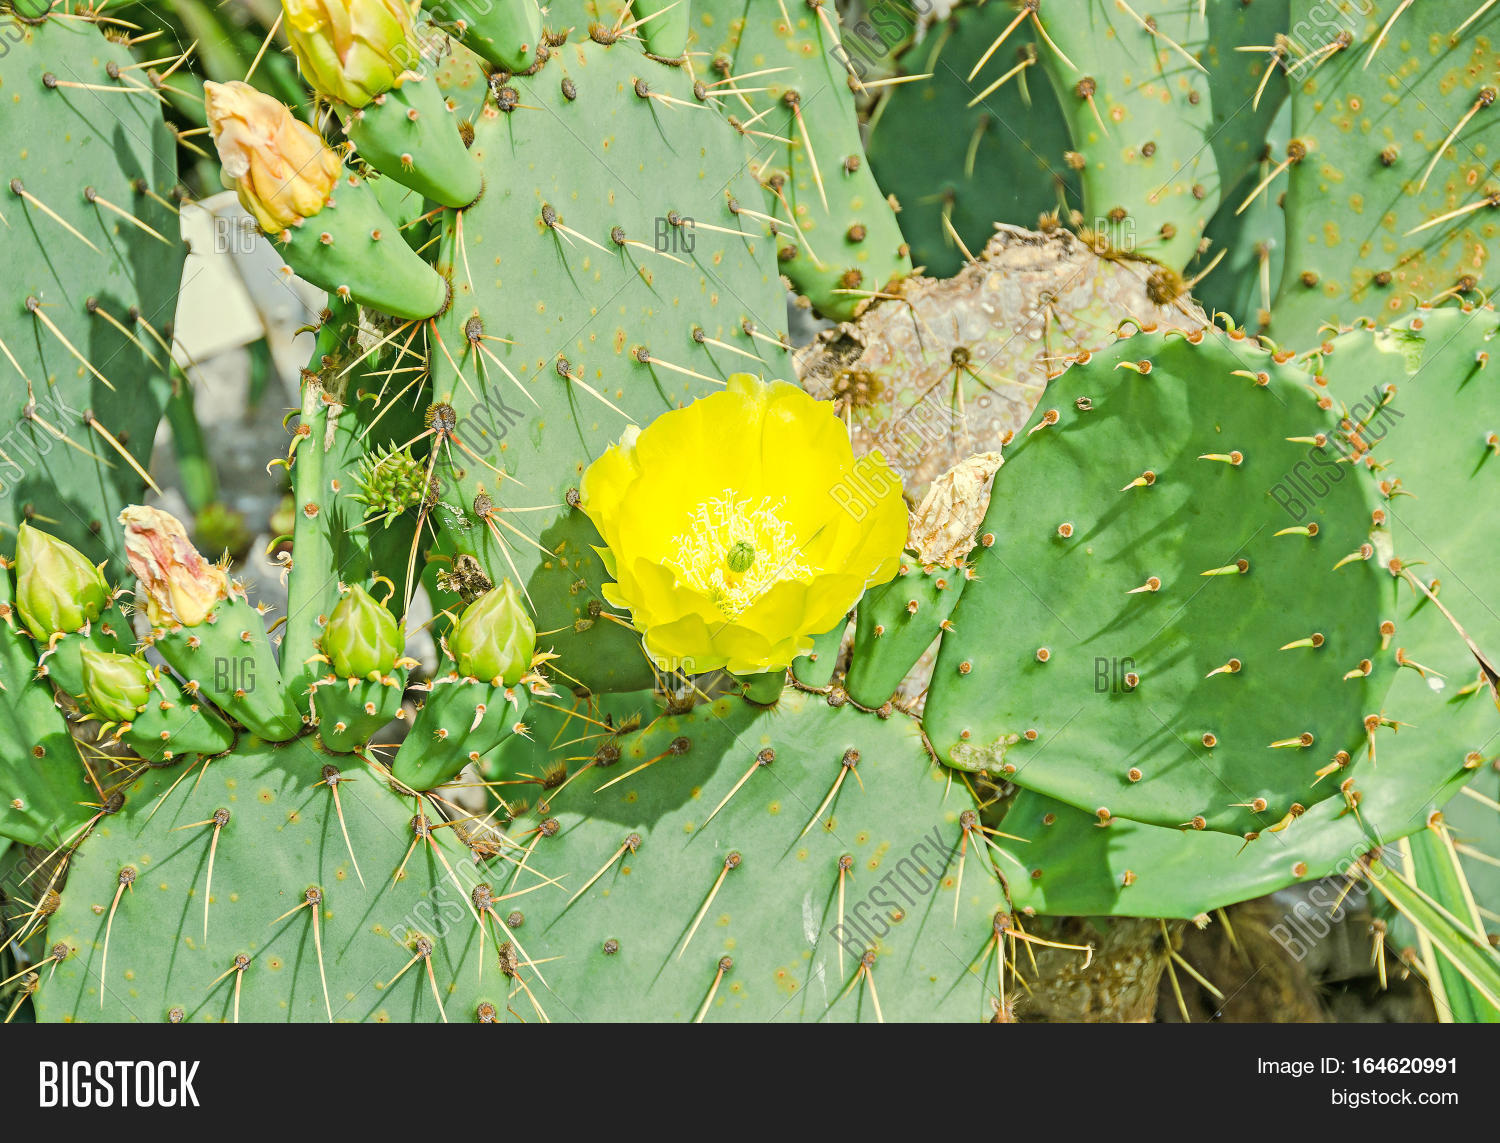 Yellow flower opuntia humifusa image photo bigstock yellow flower opuntia humifusa the devils tongue eastern prickly pear or indian fig mightylinksfo Images